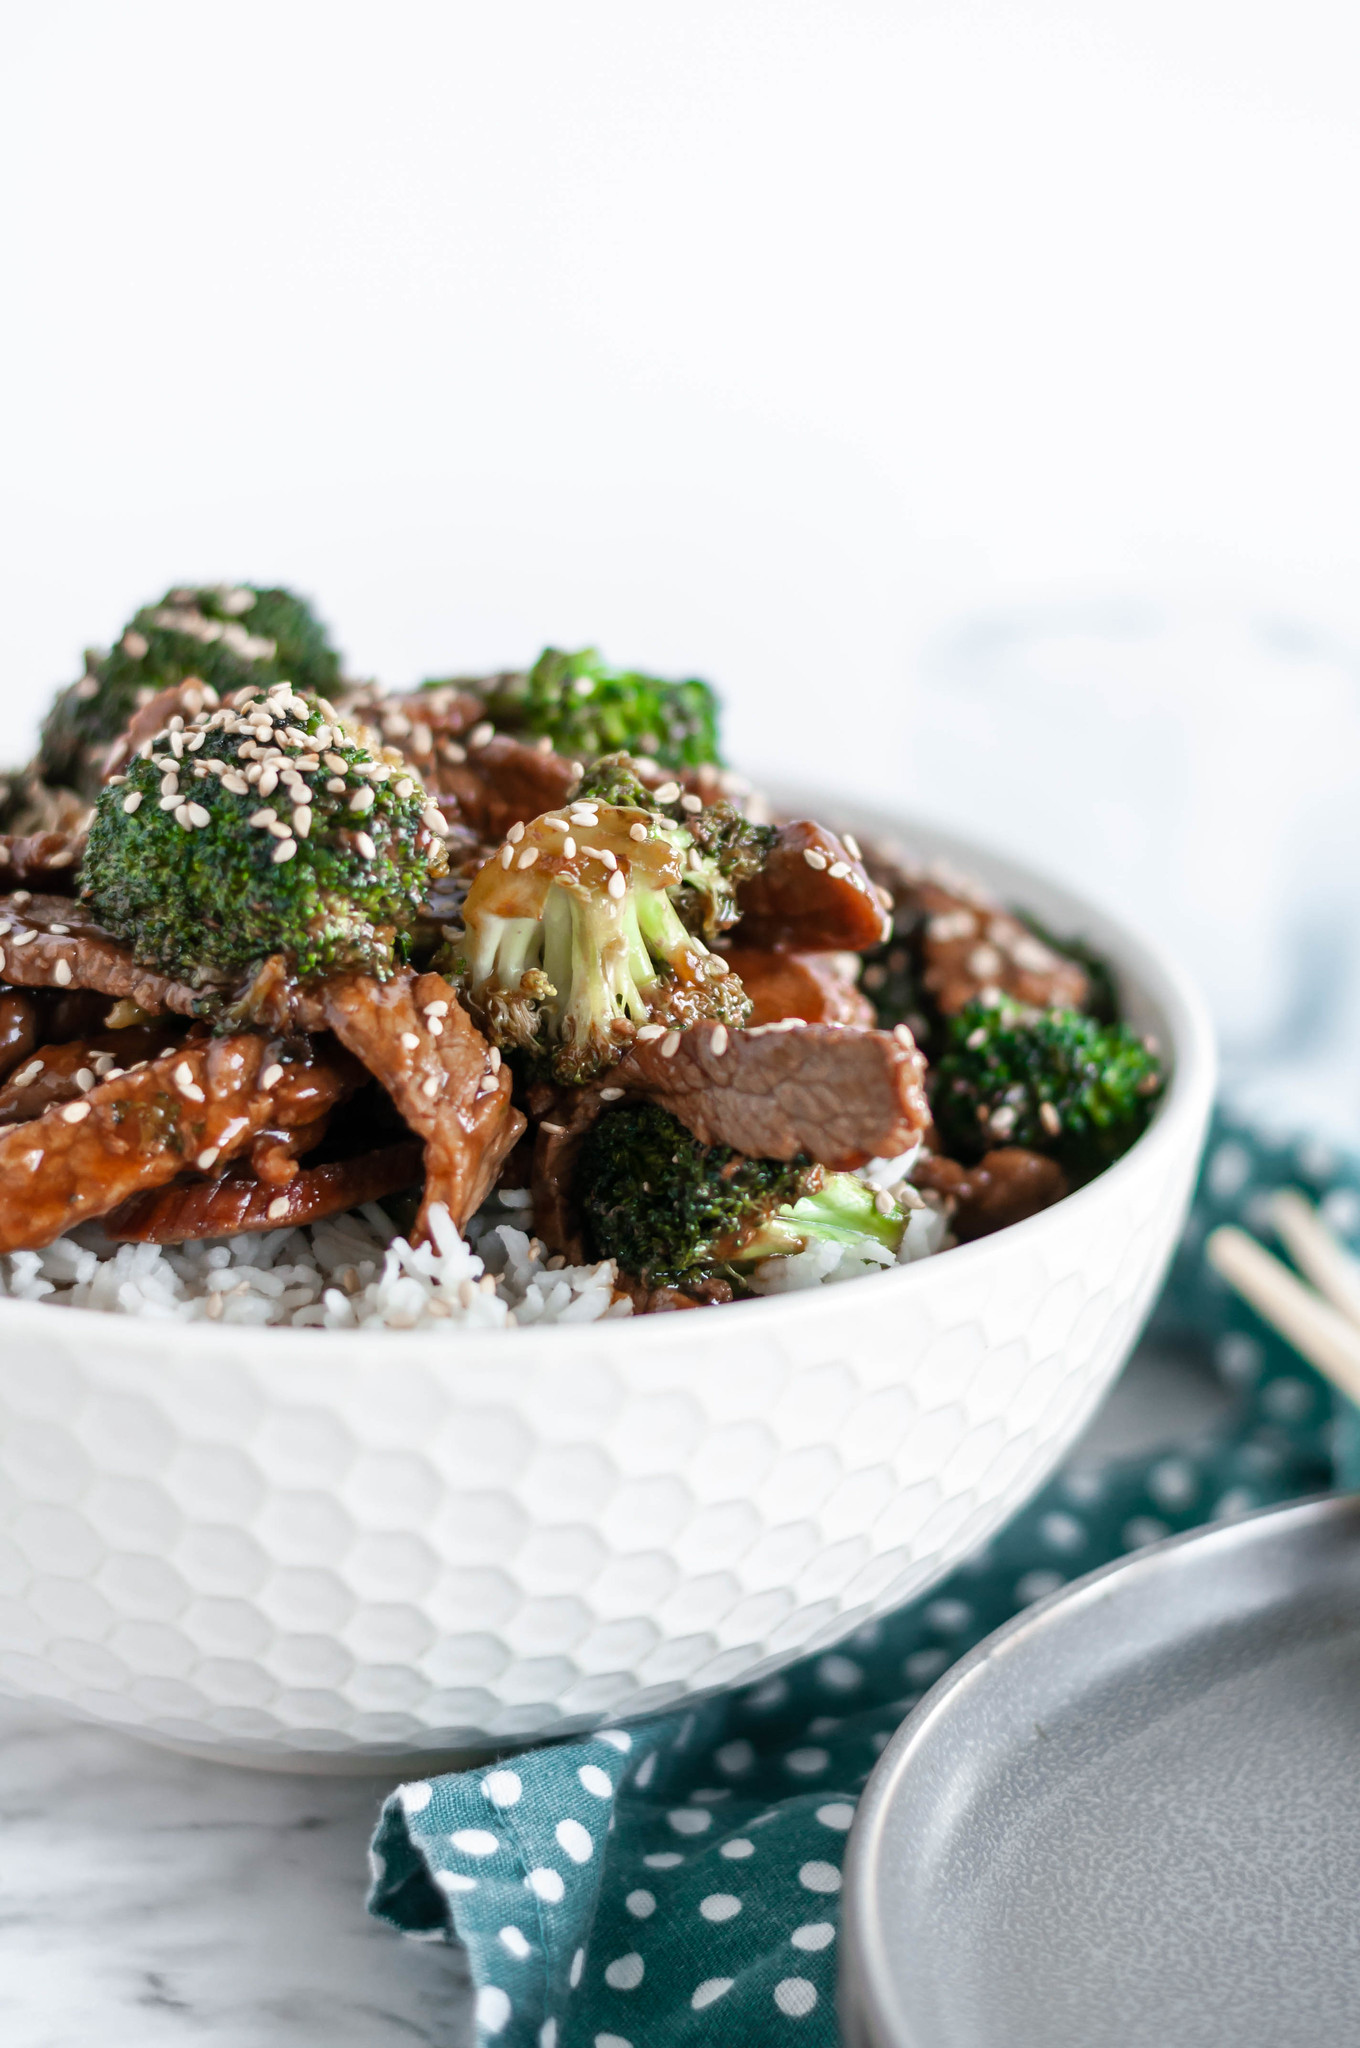 Sesame Beef and Broccoli is super simple and packed full of flavor. Perfect for weeknight dinners since it's done in less than 30 minutes.